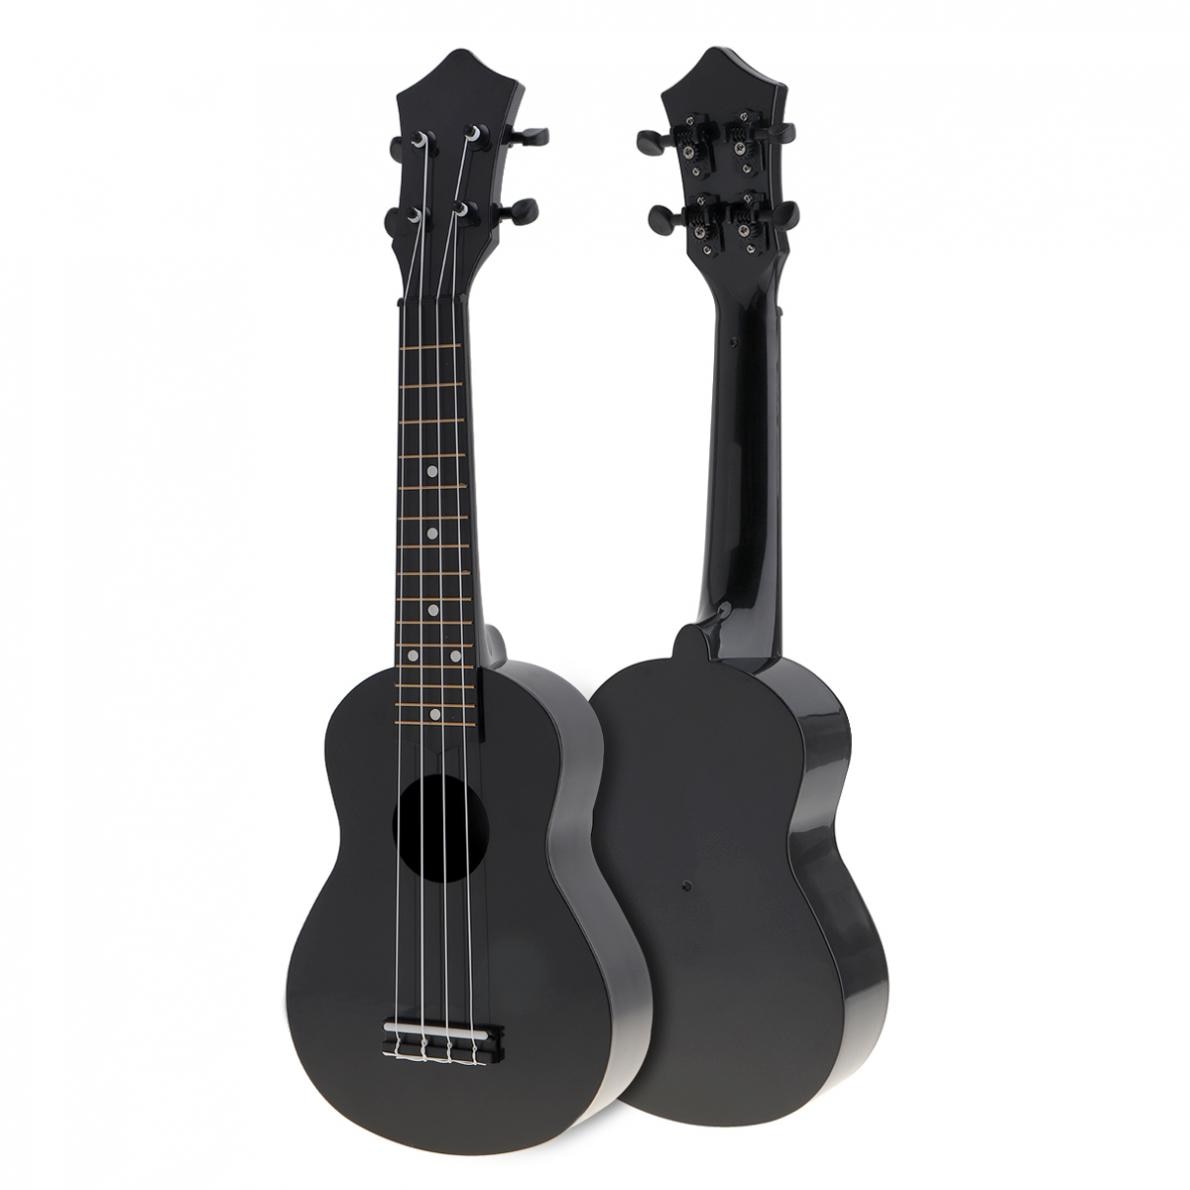 21 Inch High Quality Colorful Acoustic Ukulele 4 Strings Hawaii Guitar Portable Lightweight Instrument for Music Beginner enlarge